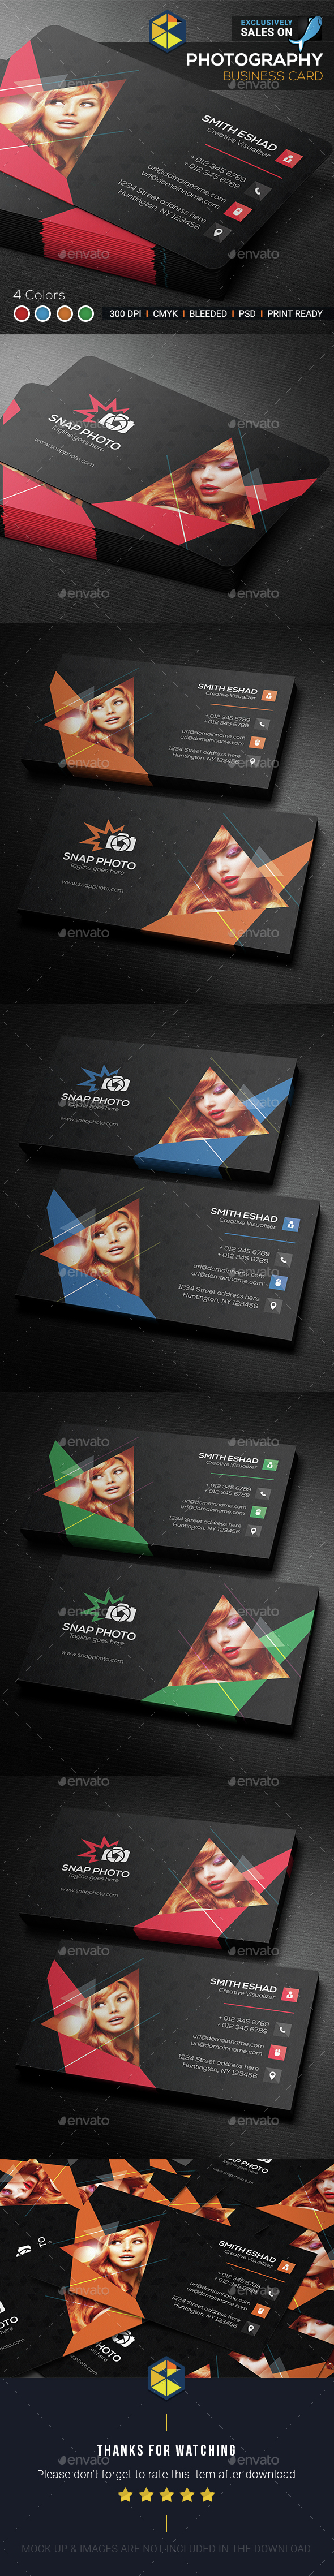 Photography Business Card Template PSD. Download here: http ...